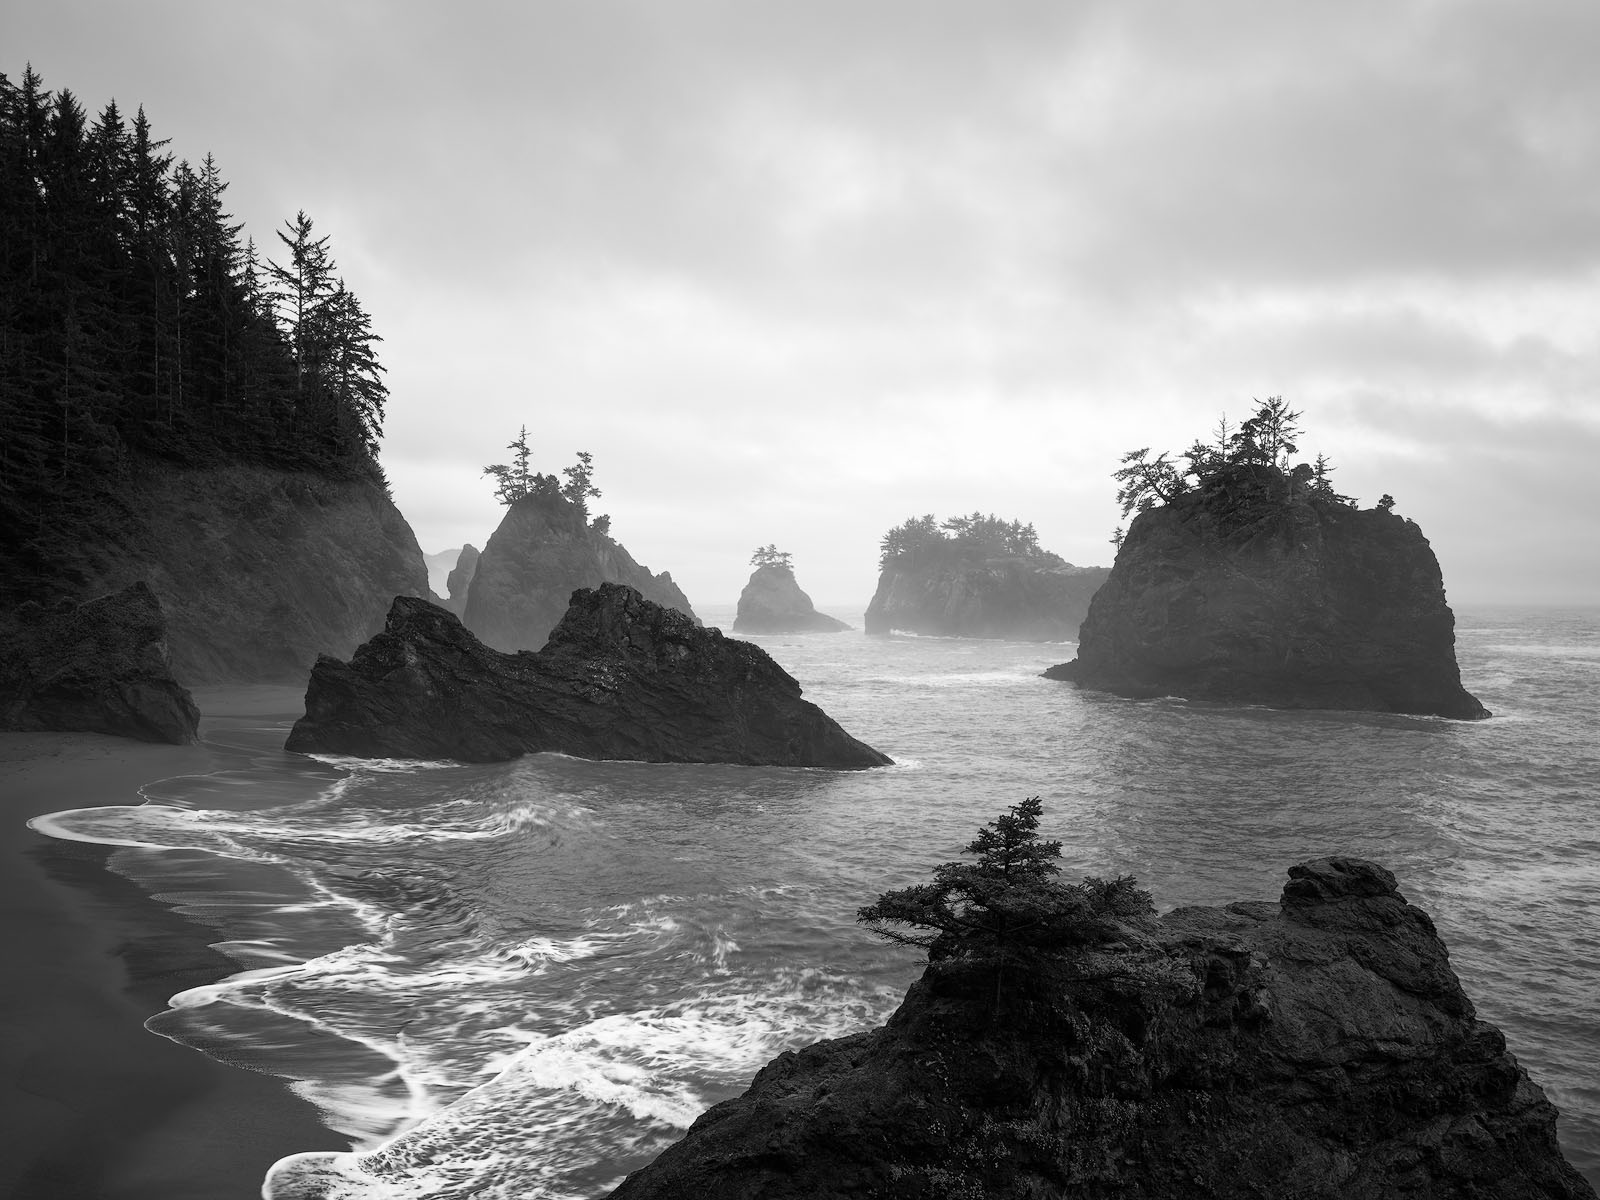 WORLD REGIONS & COUNTRIES, North America, United States of America, Oregon, environment, scenery, land, coast, coastal, coastline, landscape, IMAGE/COLOR/STYLE/FORMAT, BW/COLOR, color, IPTC-SUBJECT, 0, photo